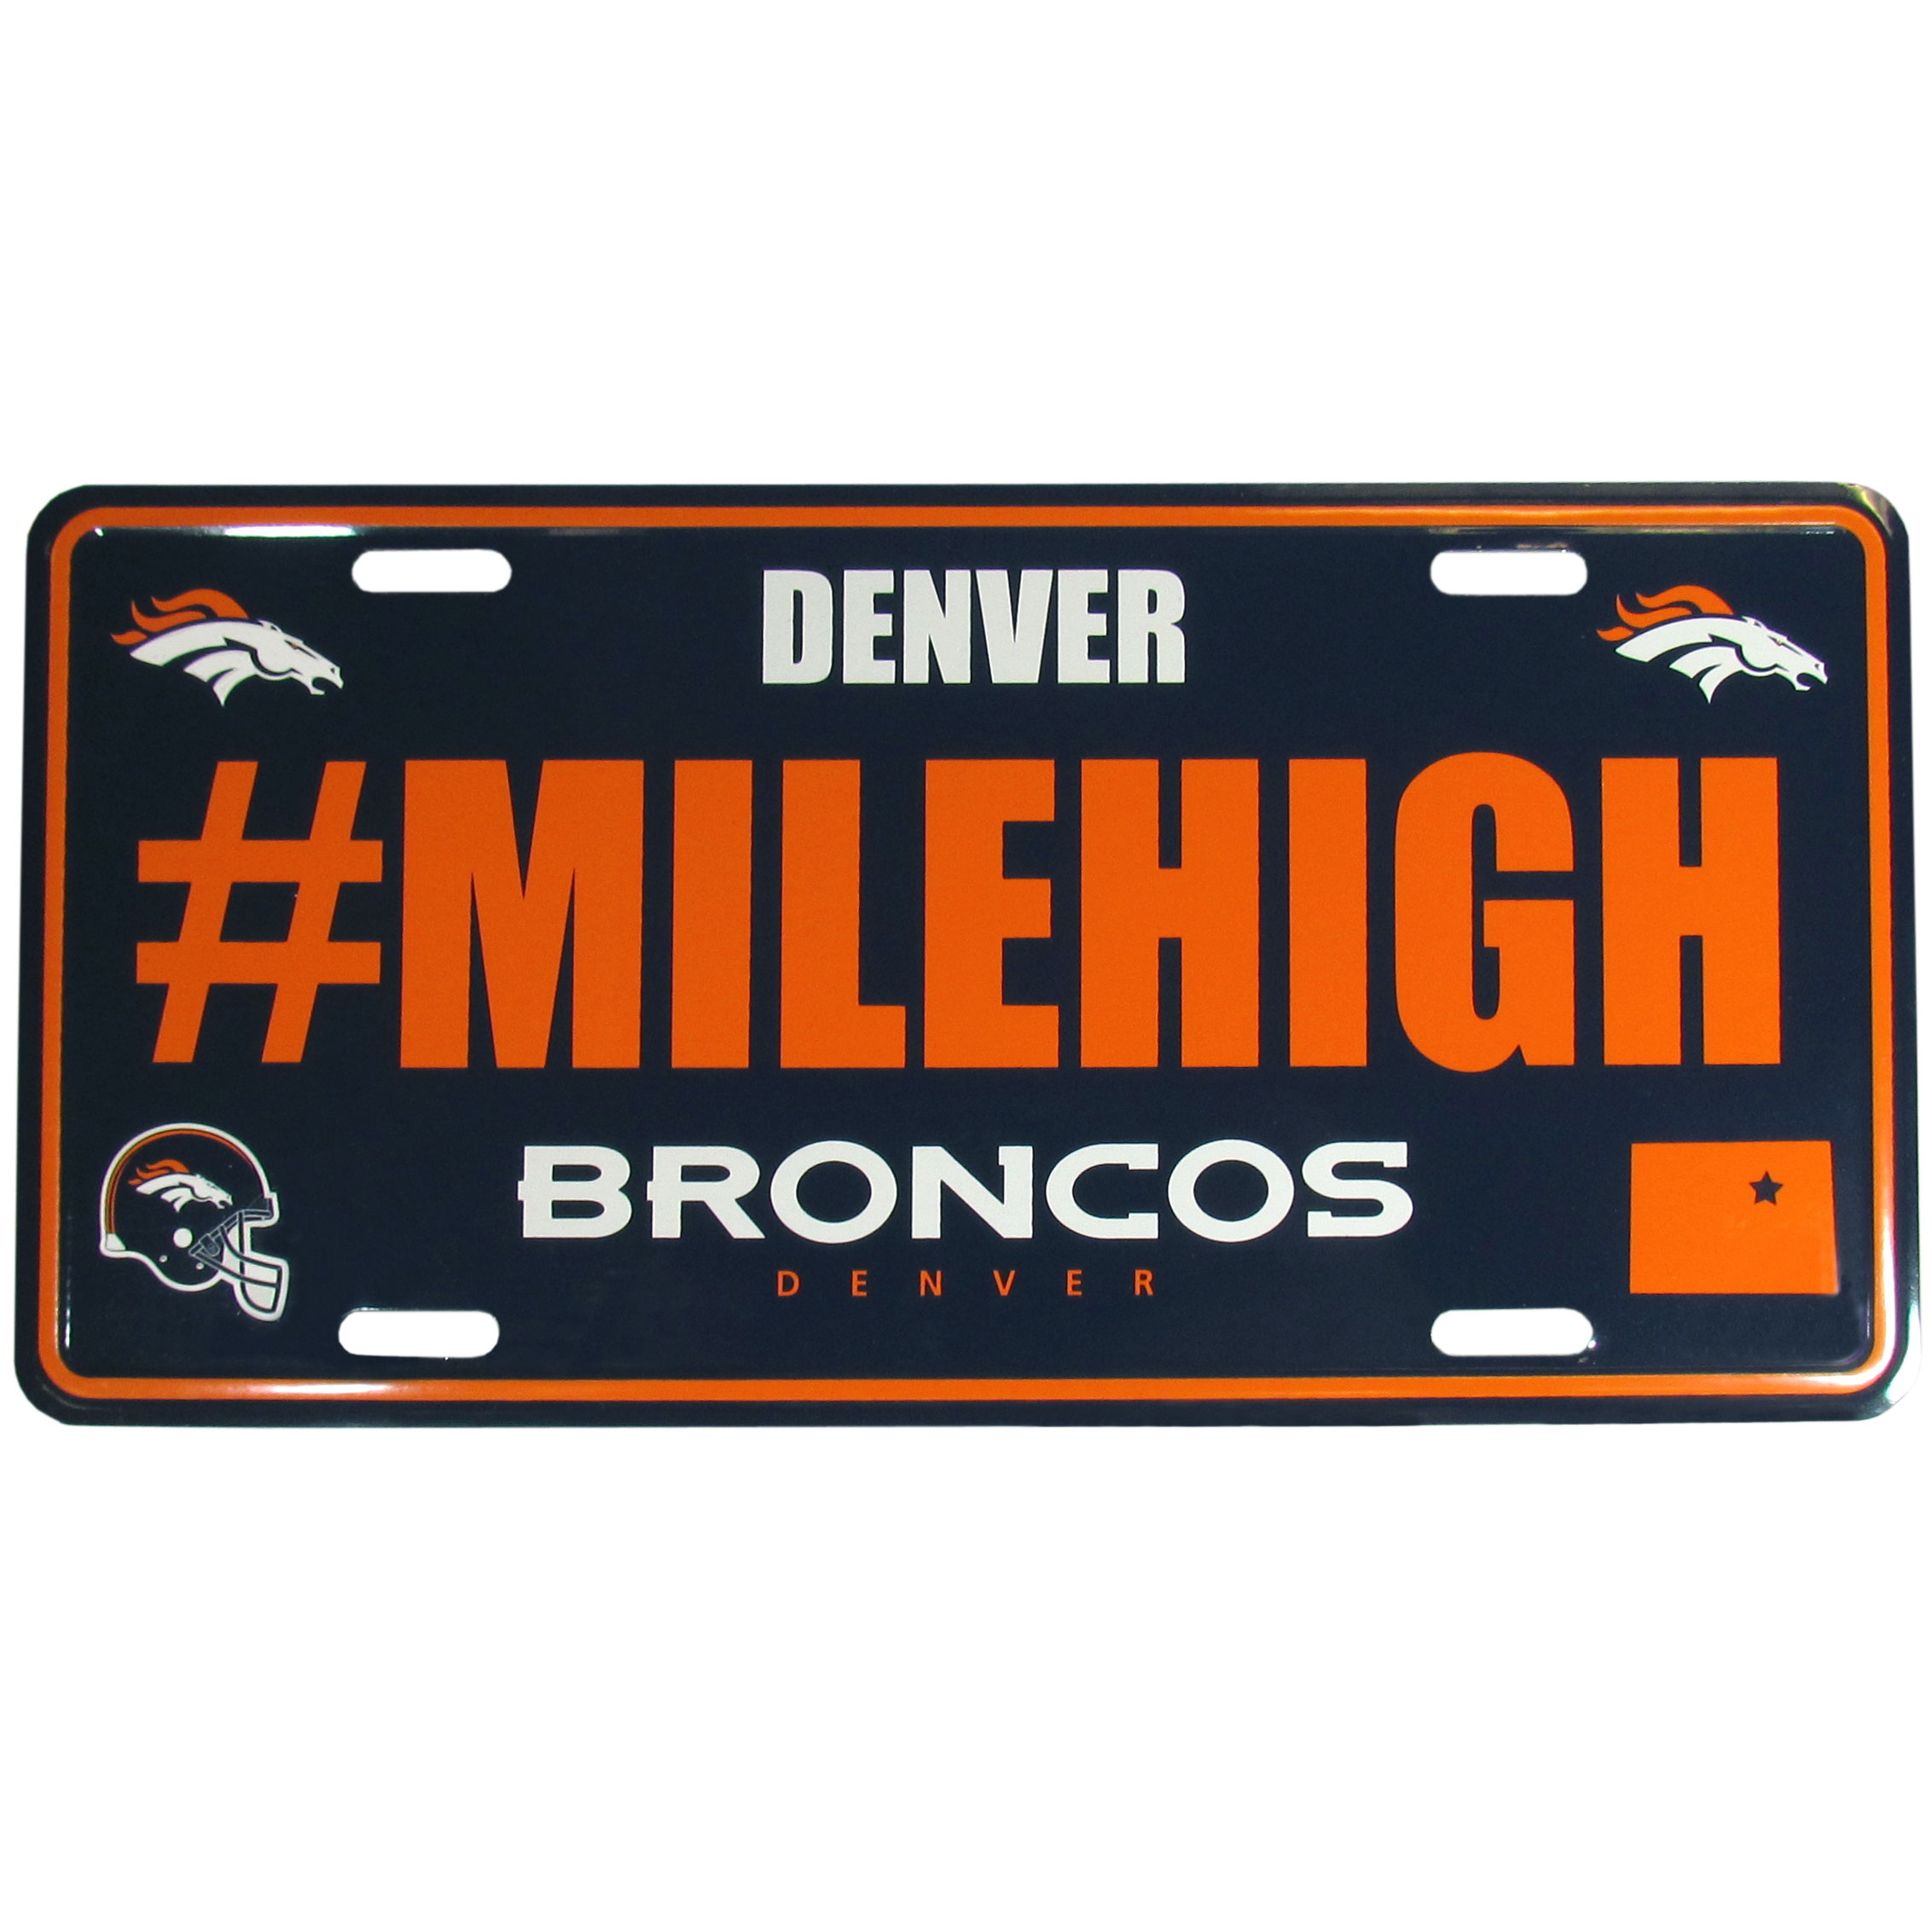 Denver Broncos Hashtag License Plate - It's a hashtag world! Celebrate the Denver Broncos with this stamped aluminum license plate with the most popular team hashtag! This bright license plate will look great on your vehicle or mounted in your fan cave.